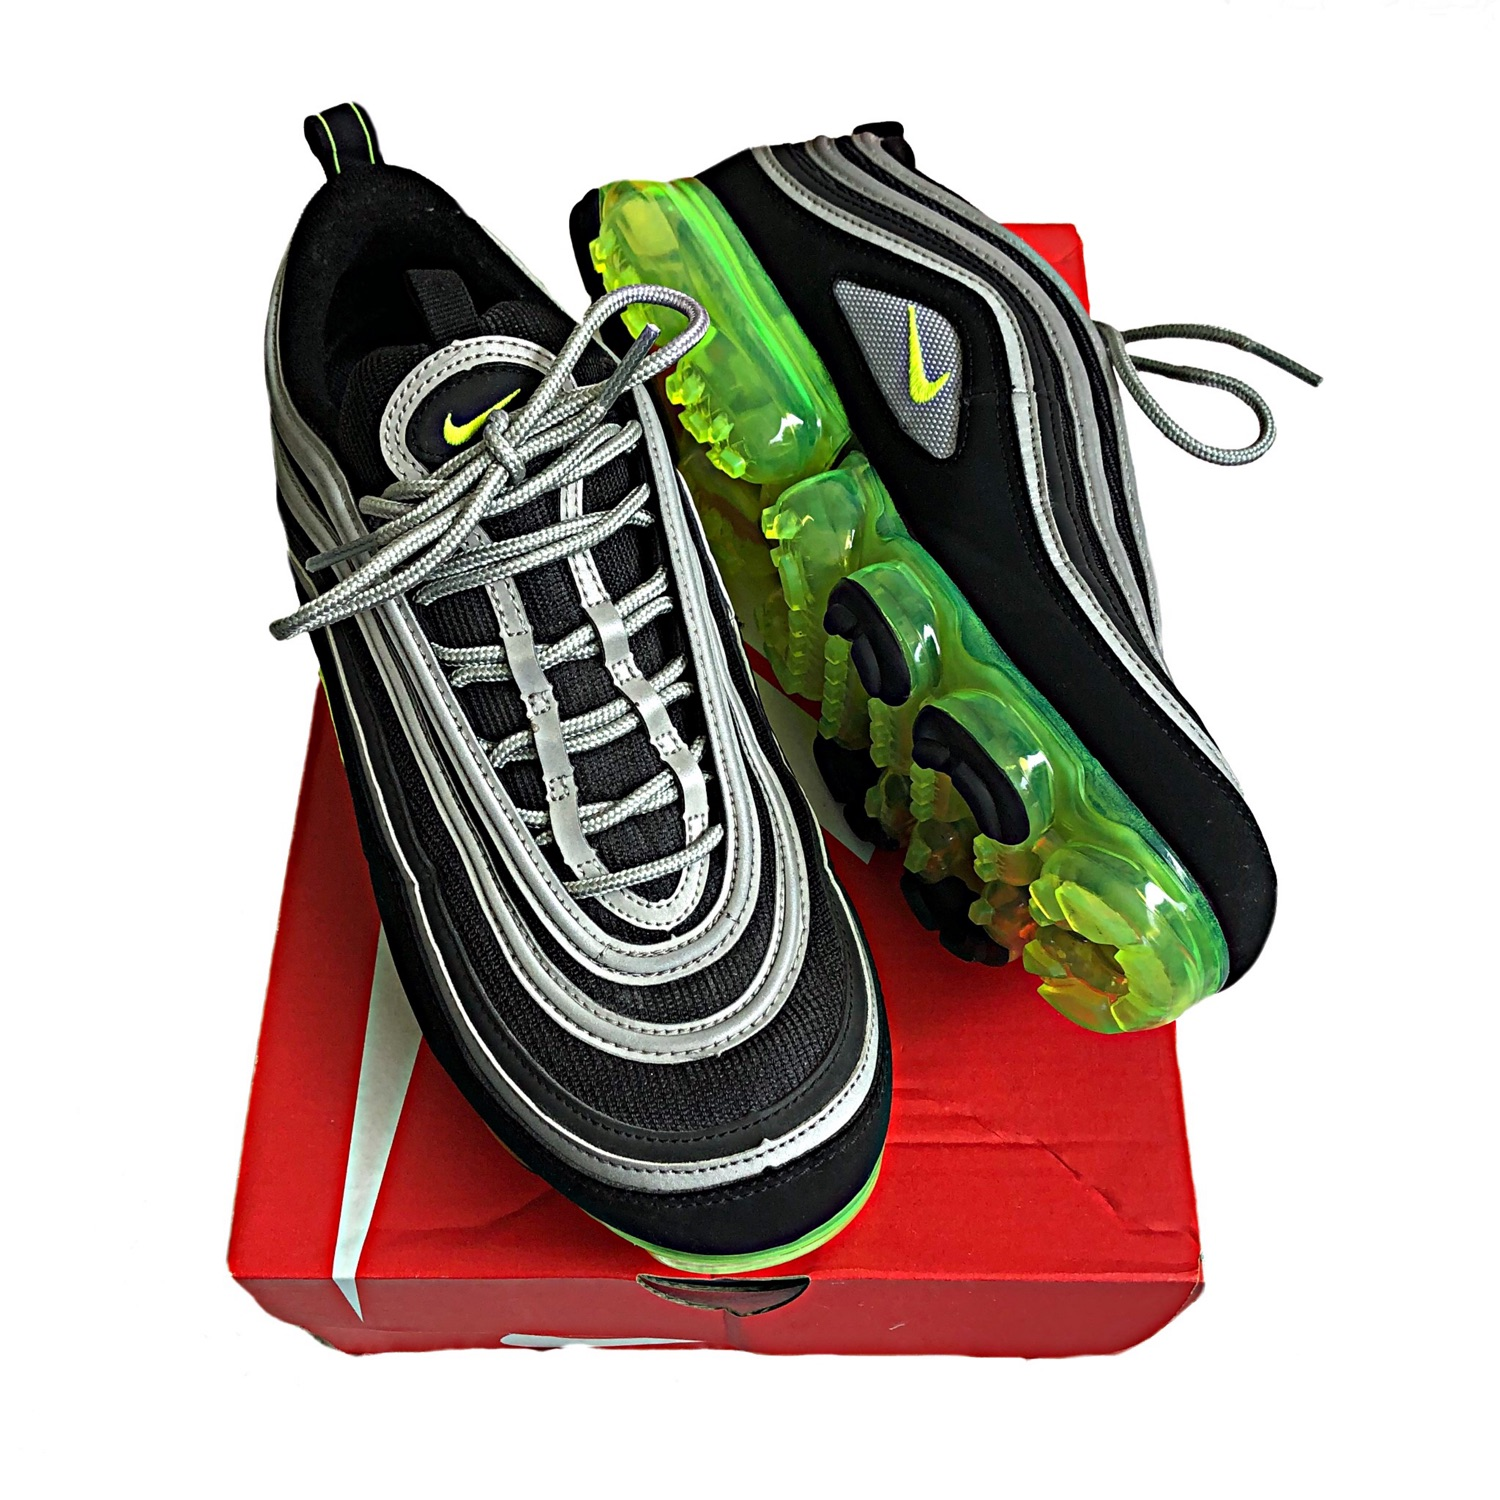 Nike Air Max 97 Vapor Max Neon And Black Shoe